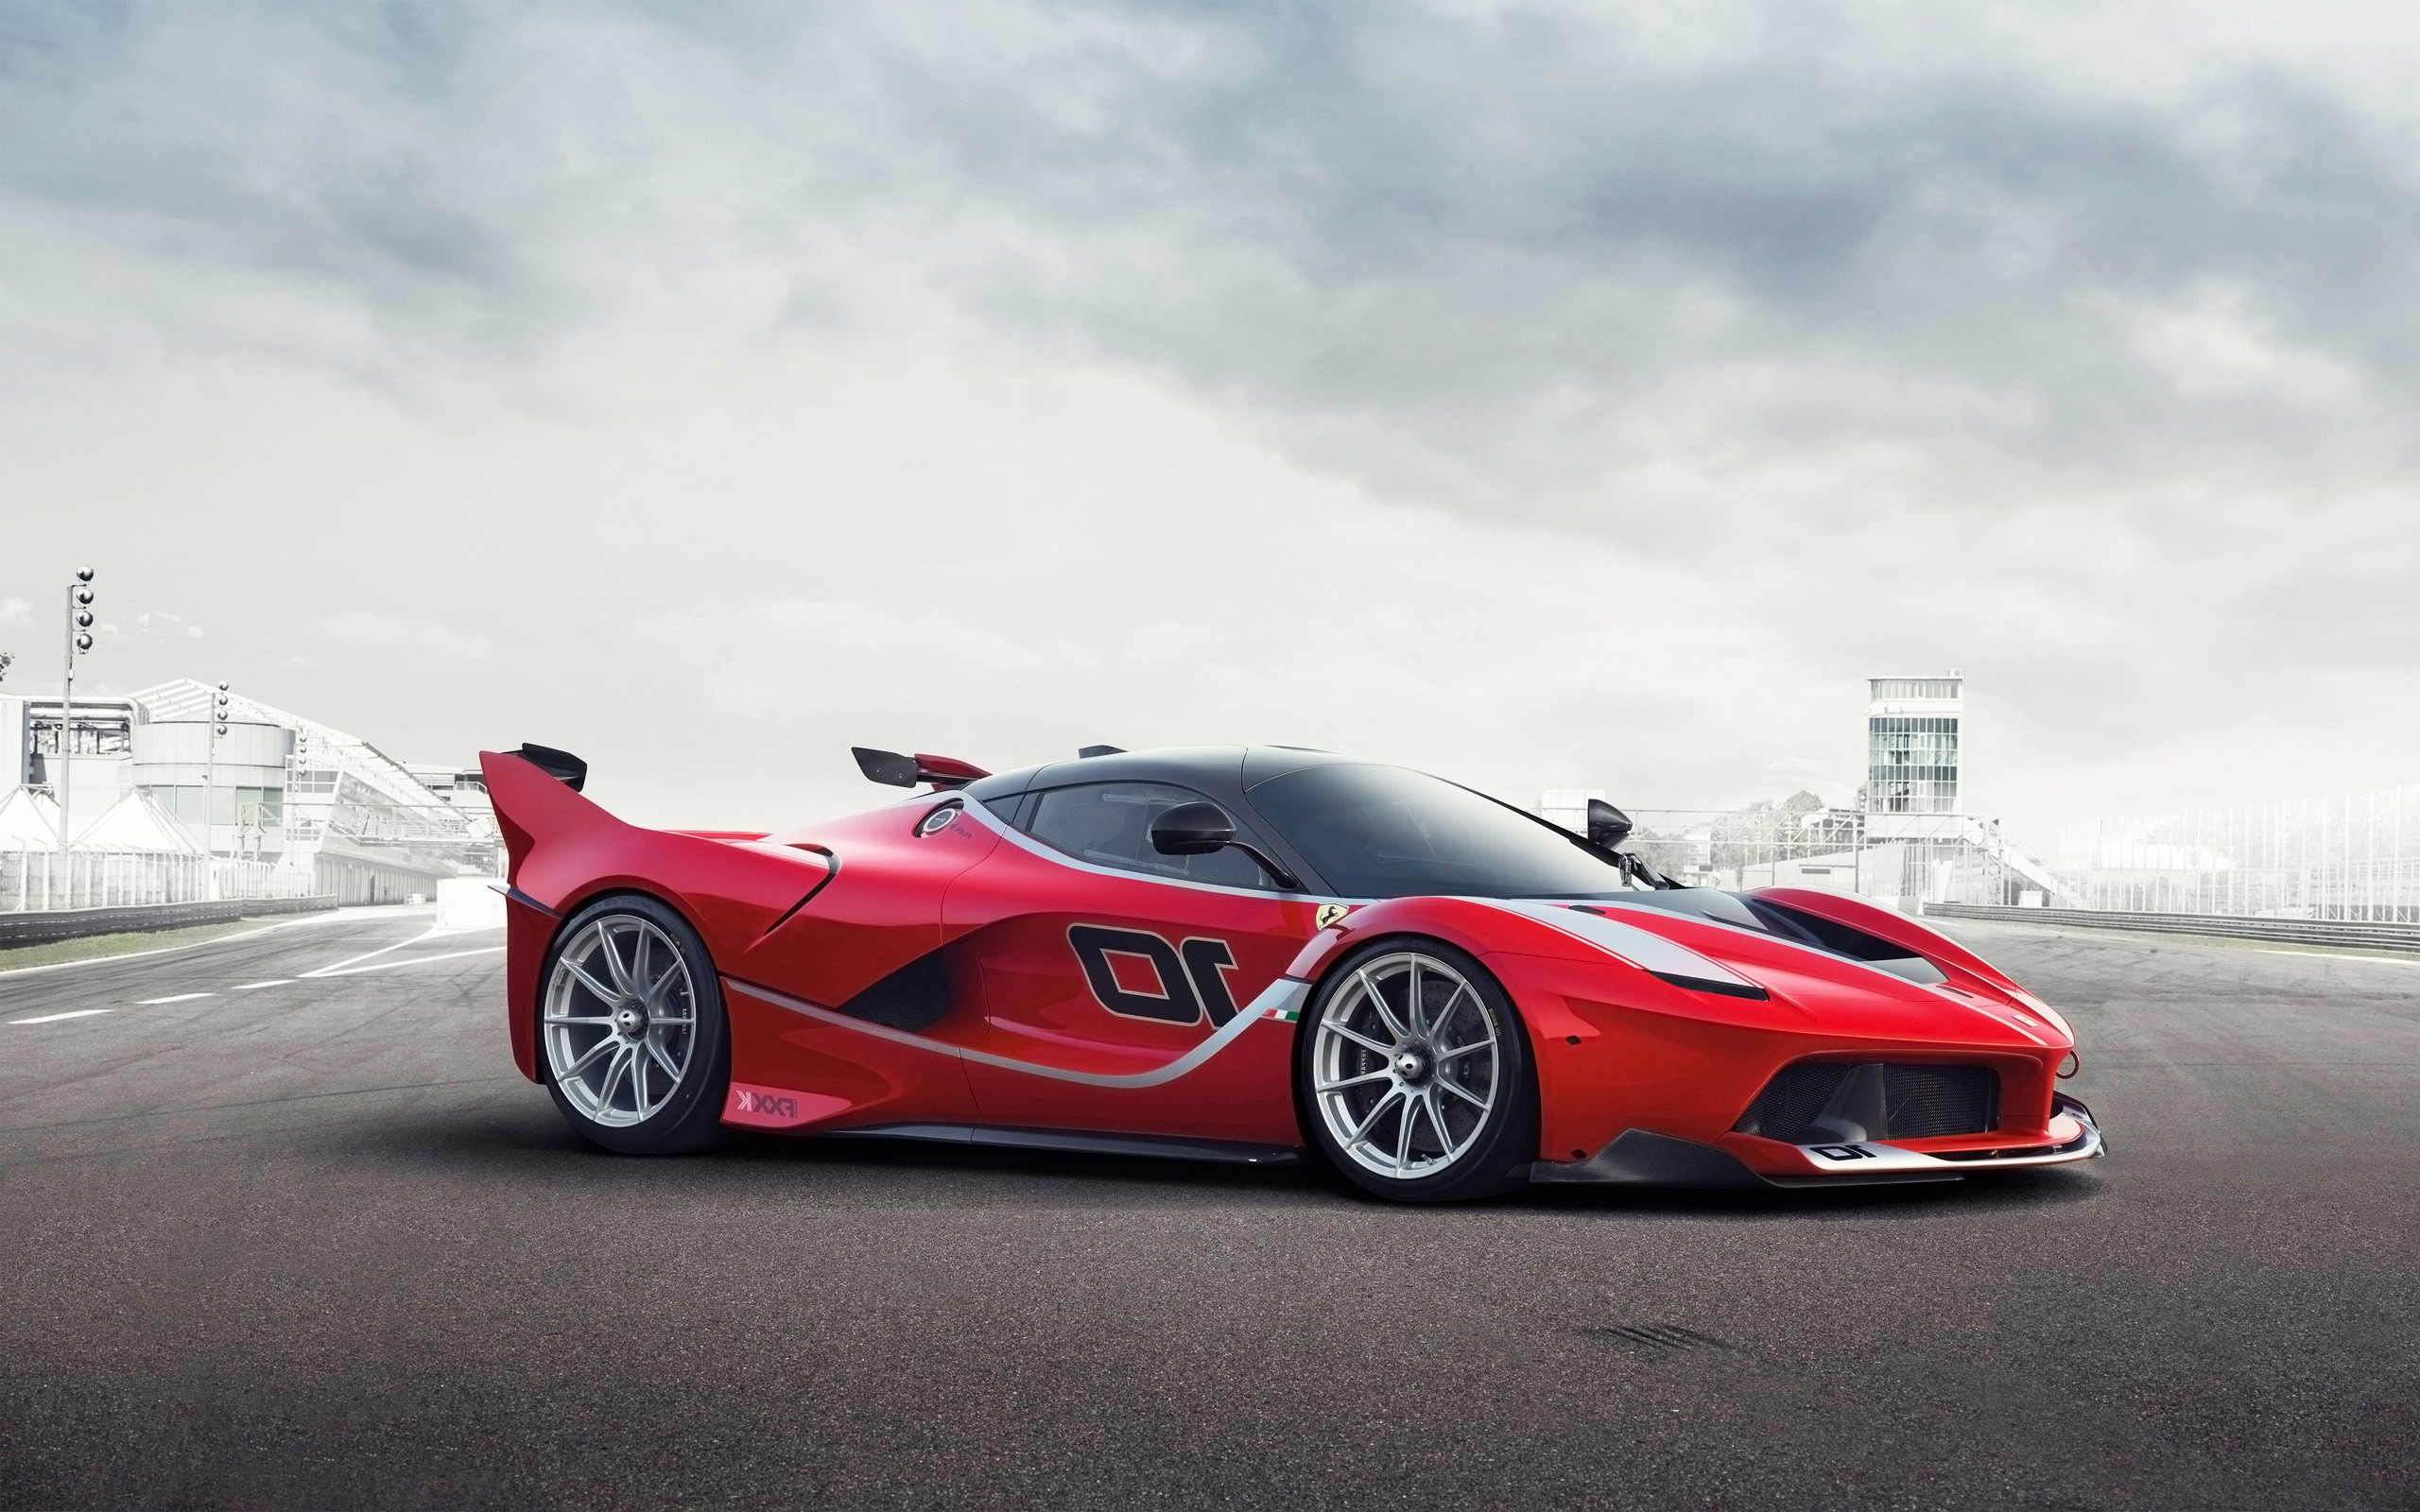 Ferrari Fxx K Hd Cars 4k Wallpapers Images Backgrounds Photos And Pictures